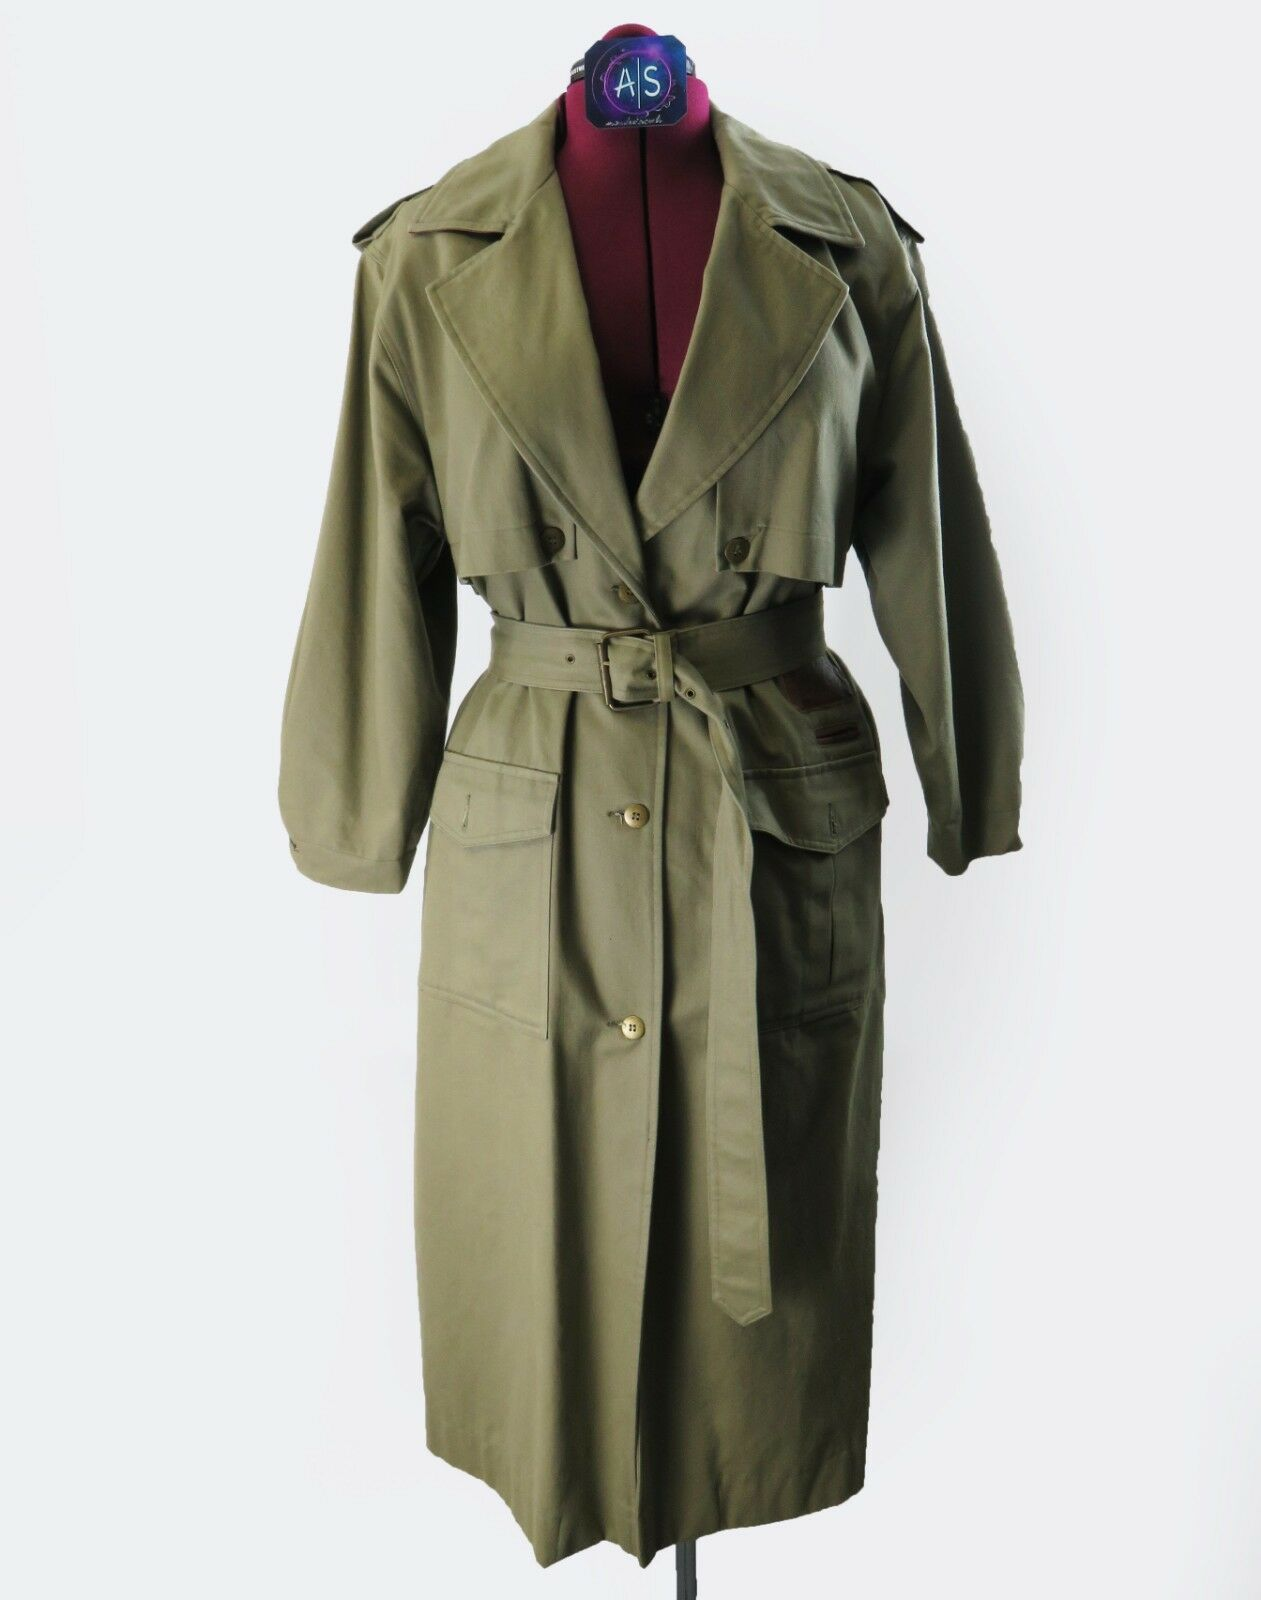 Together Petite trench coat size 8 olive army style maxi vintage womans NWOT